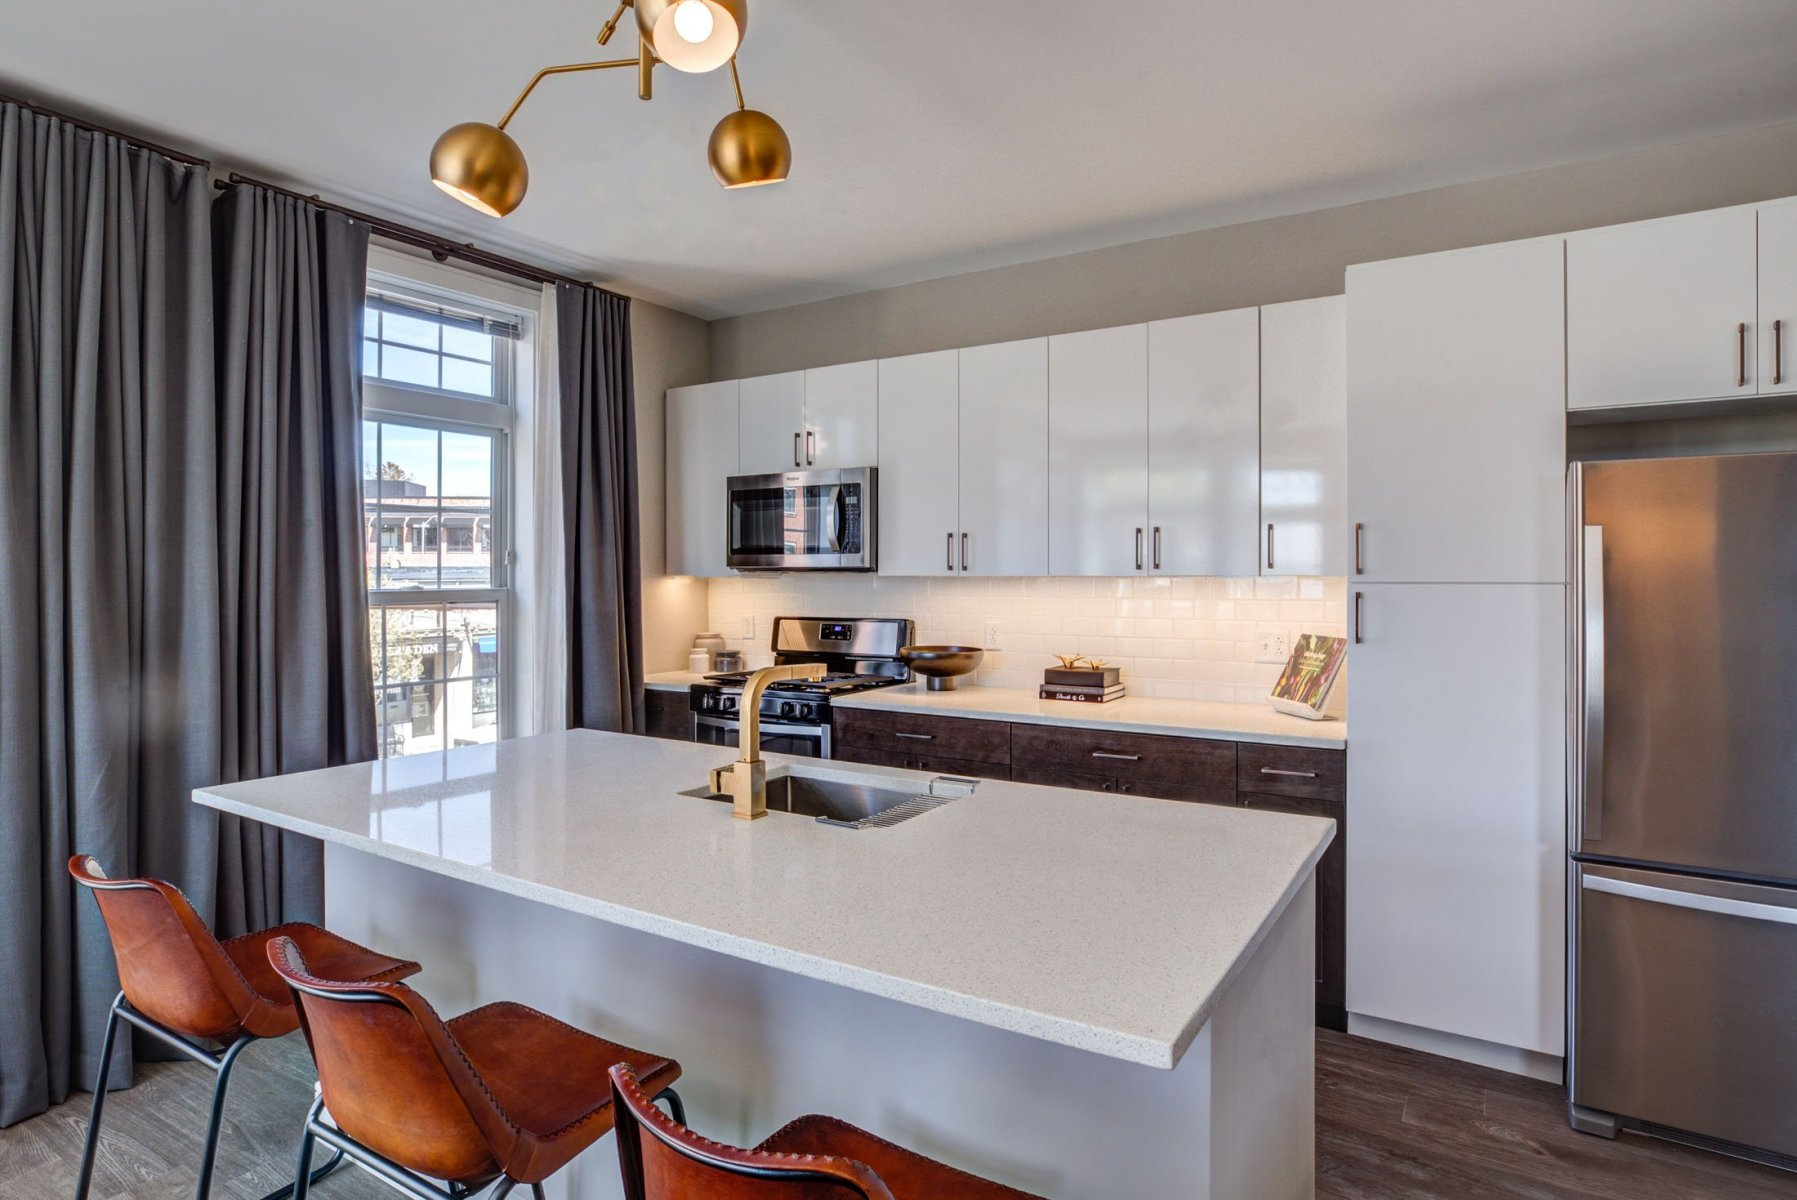 The Bradford apartment kitchen with two-tone cabinets, stainless steel appliances, quartz countertops, and large island with seating